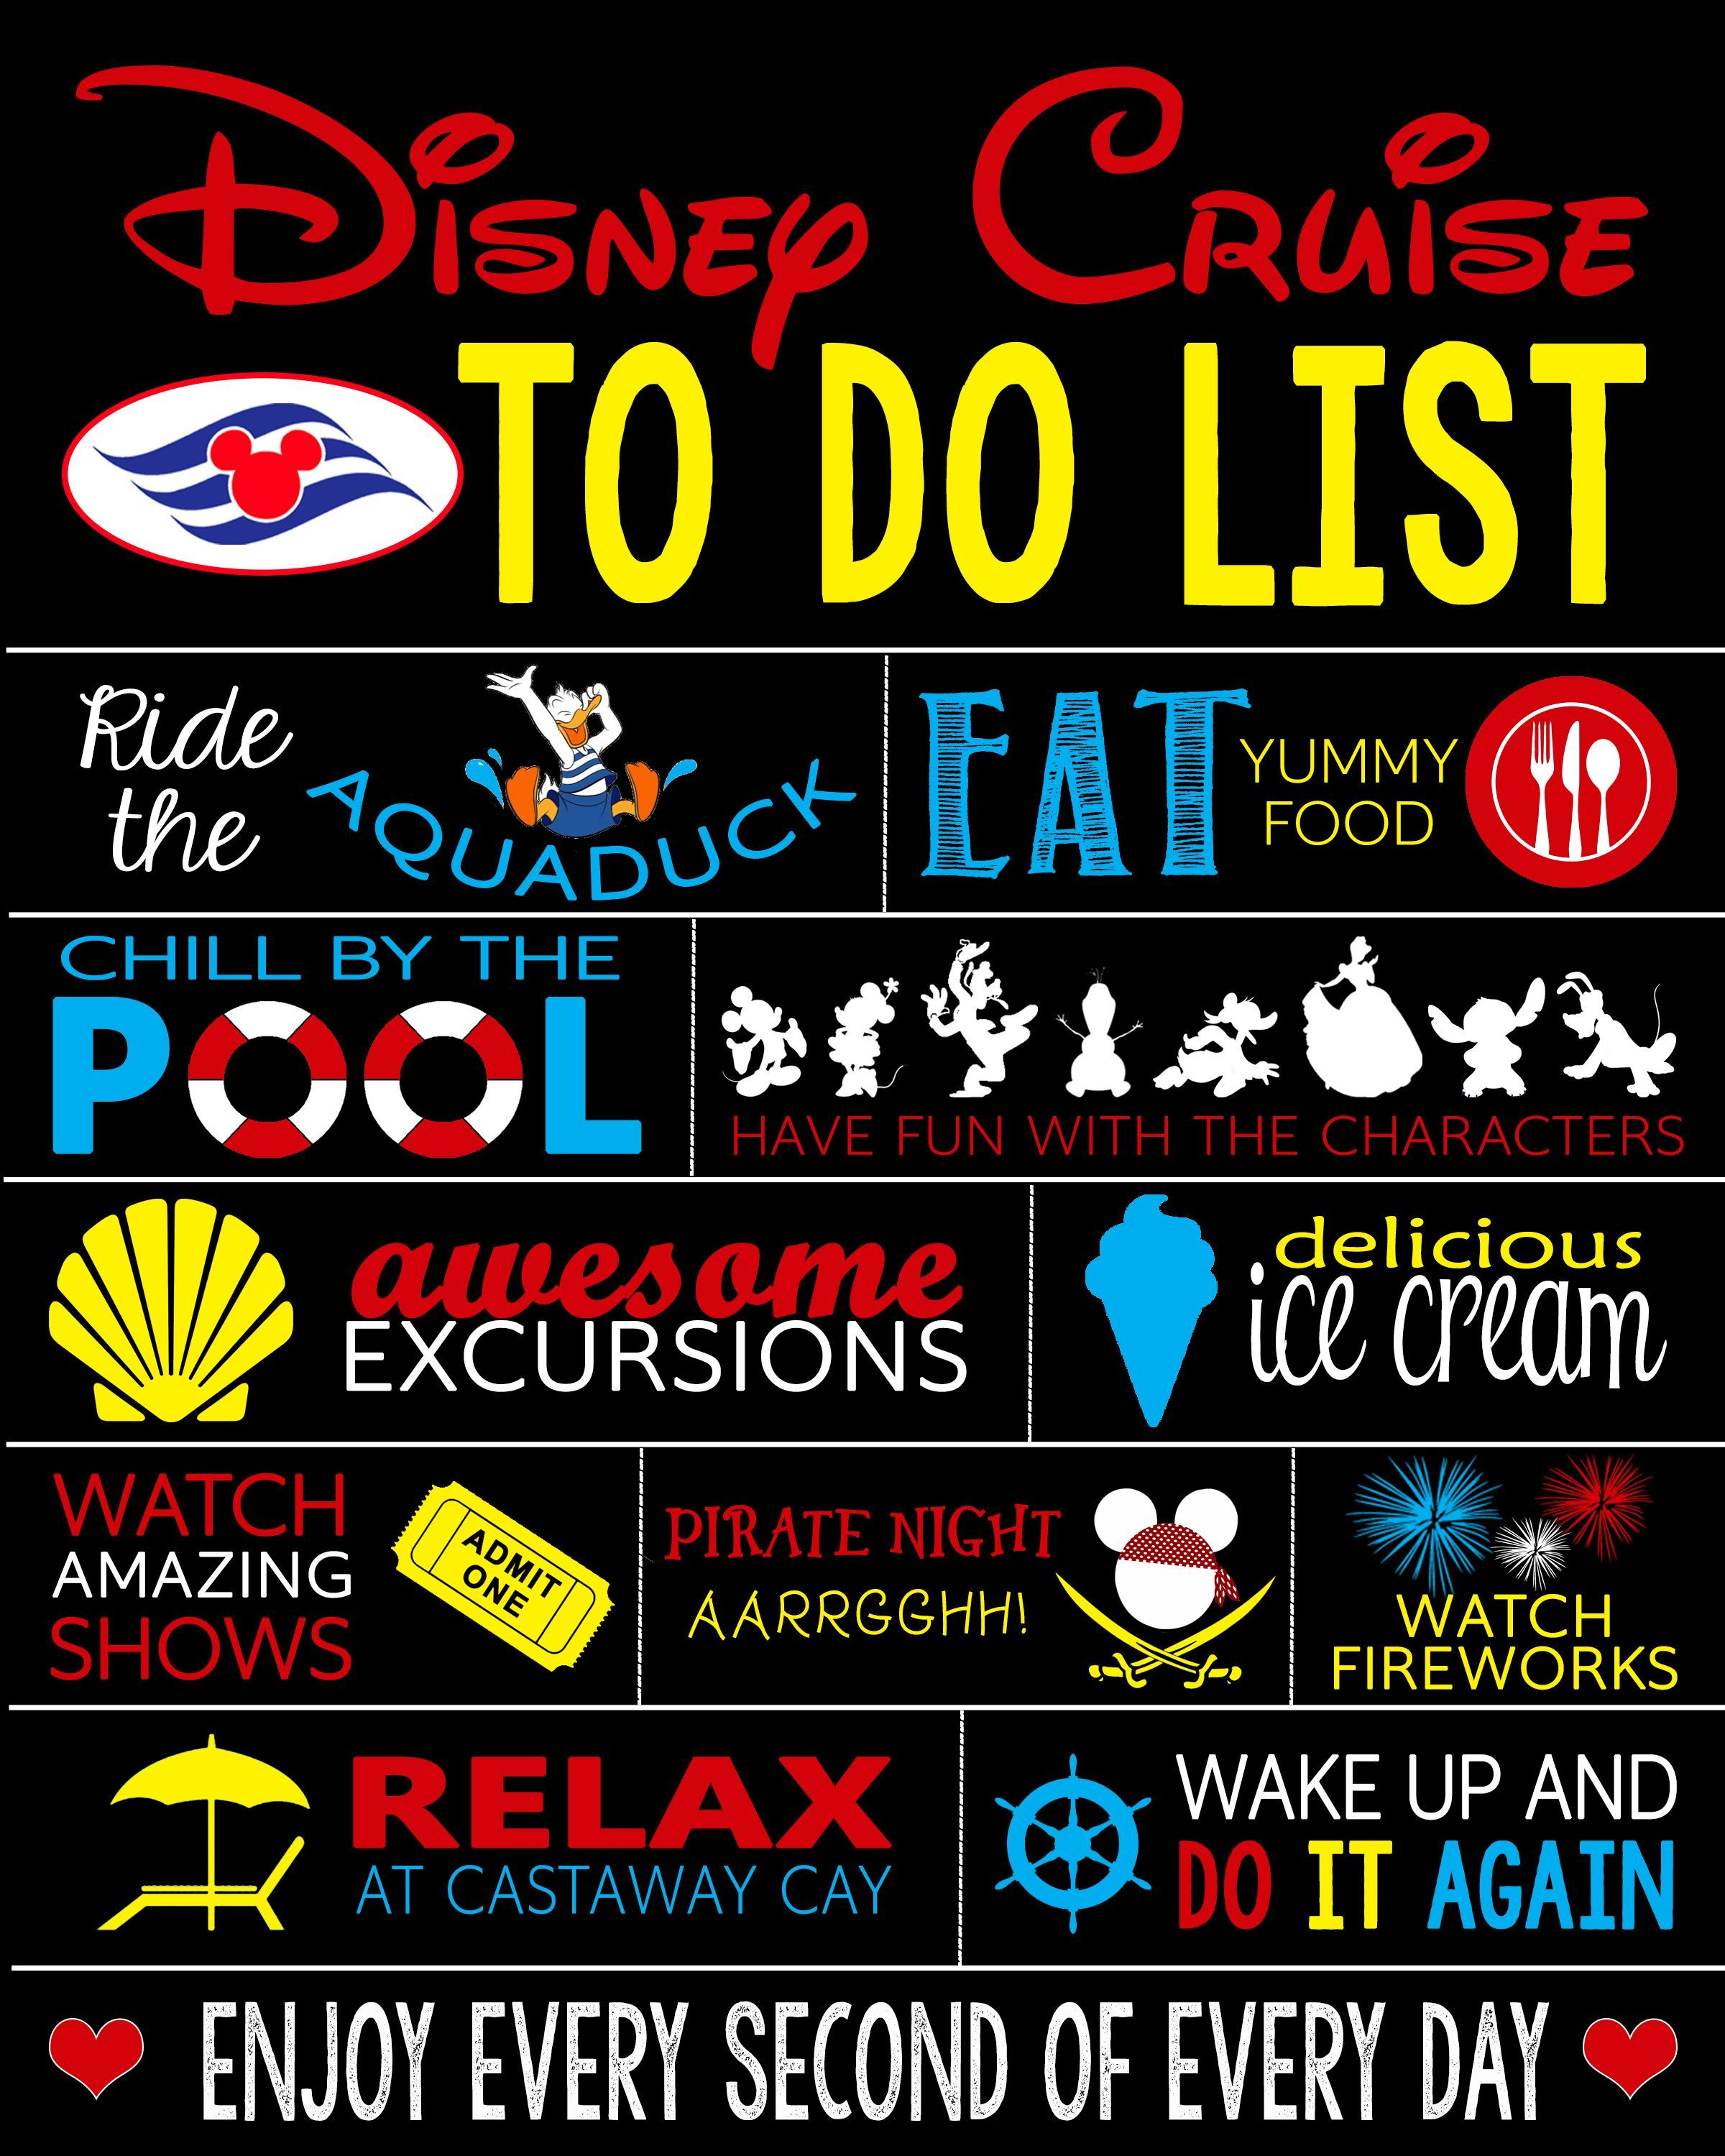 picture relating to Disney Cruise Door Decorations Printable named Printable Disney Cruise Doorway Indication - Tailored Relatives Cruise